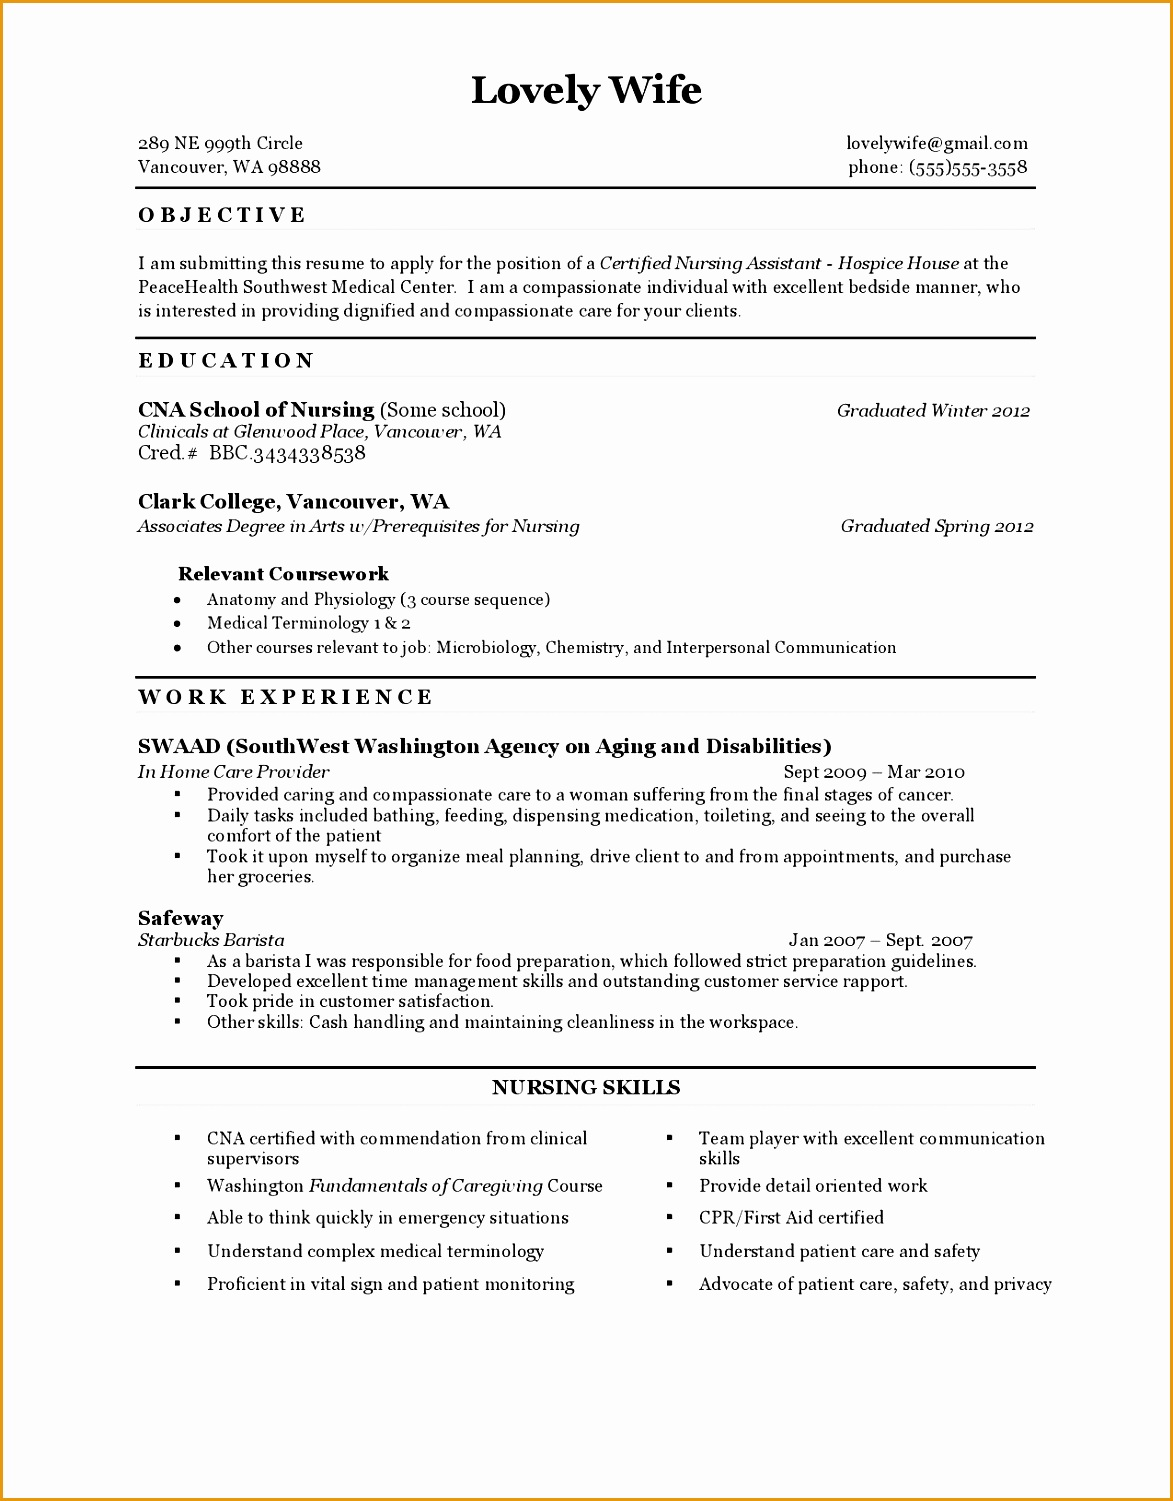 resume for cna with experience nursing assistant job description in a hospital15011173